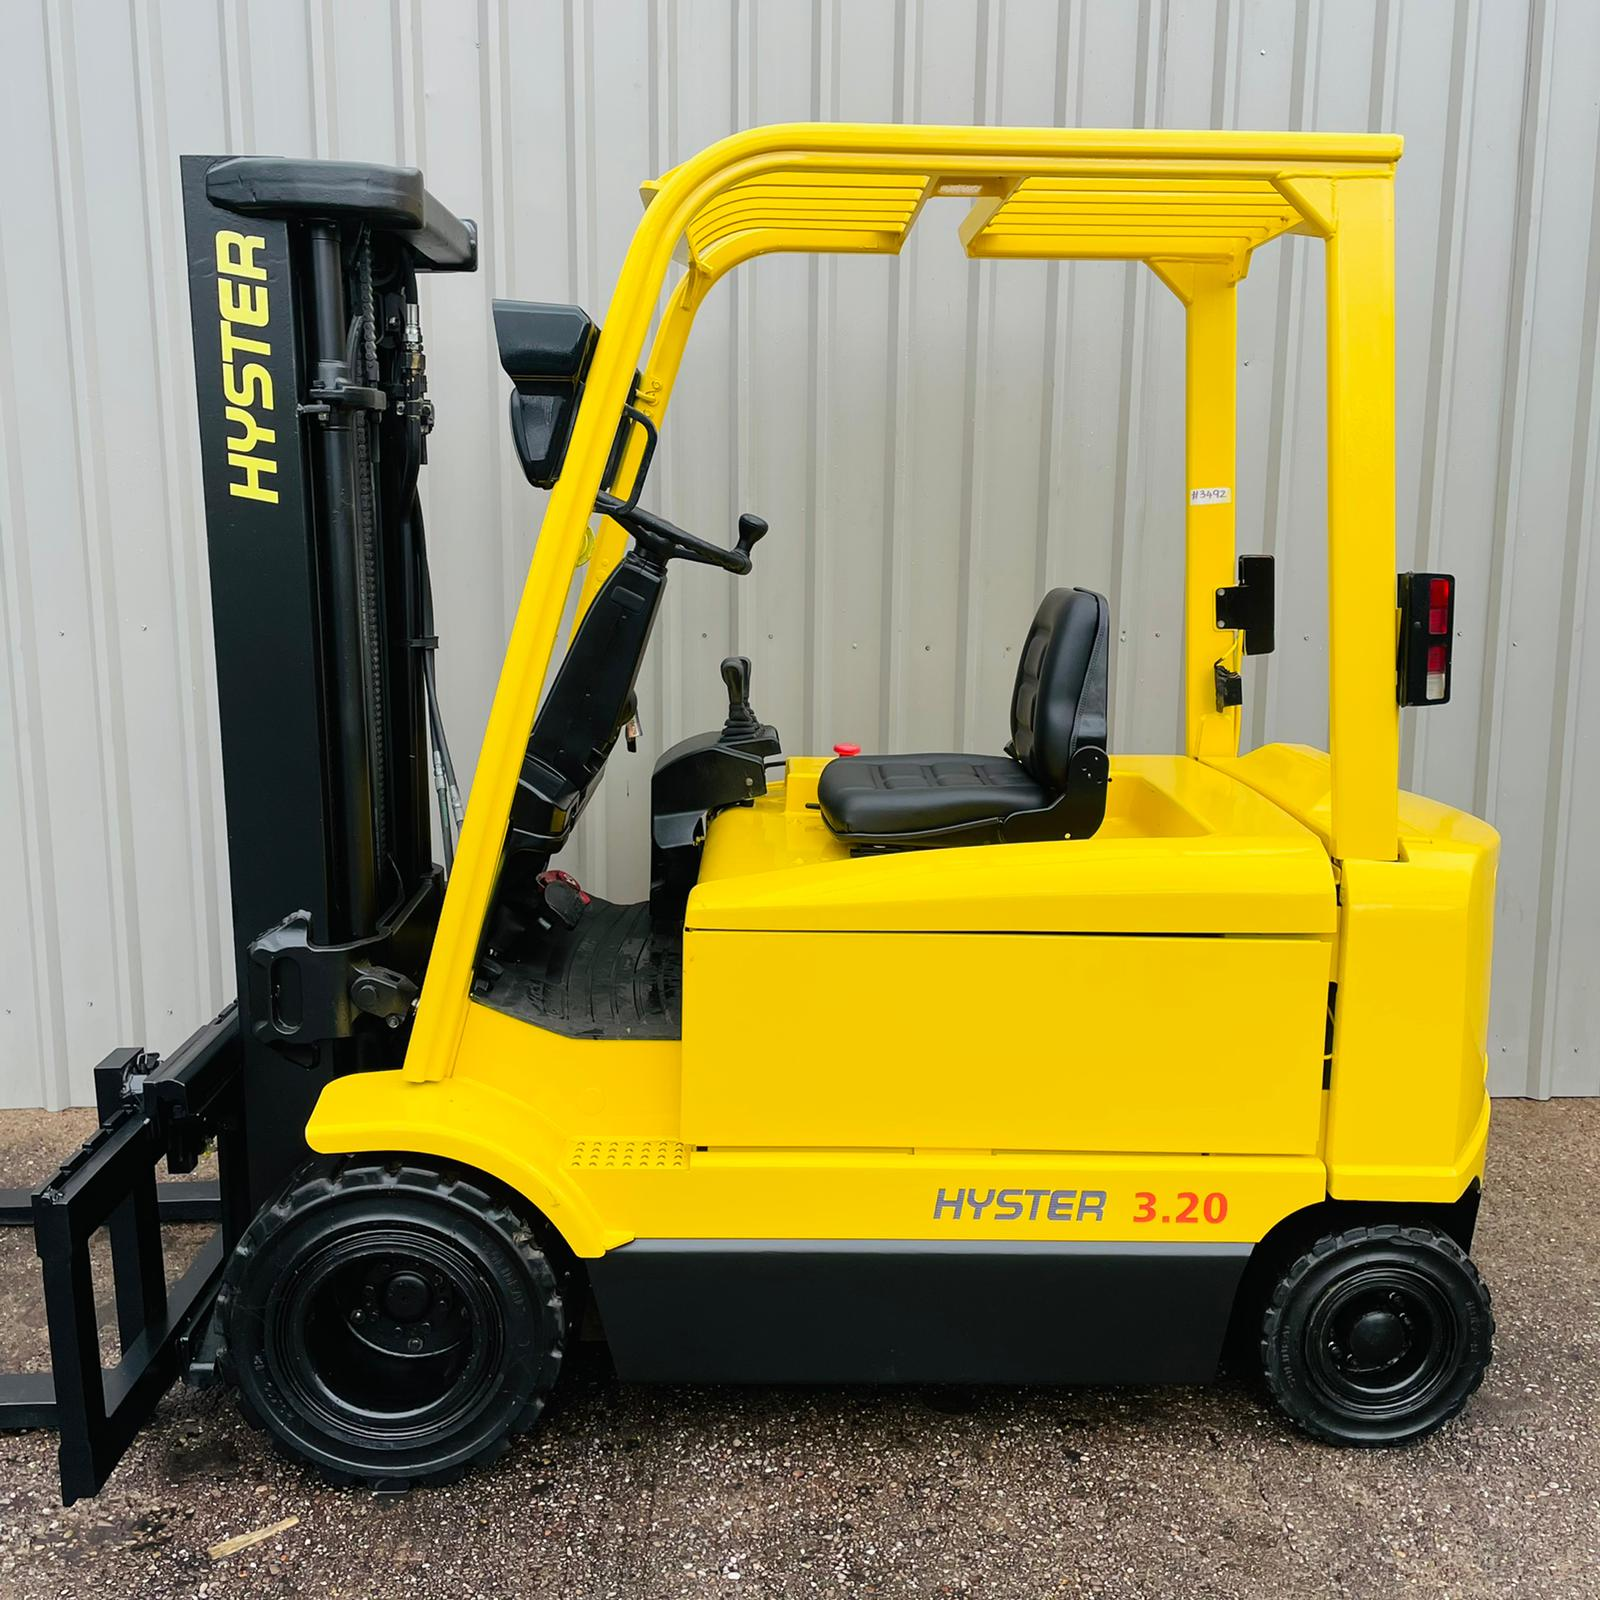 HYSTER J3.20XM serial A416A02510C #3492 WhatsApp Image 2021-06-11 at 3.03.19 PM (2)